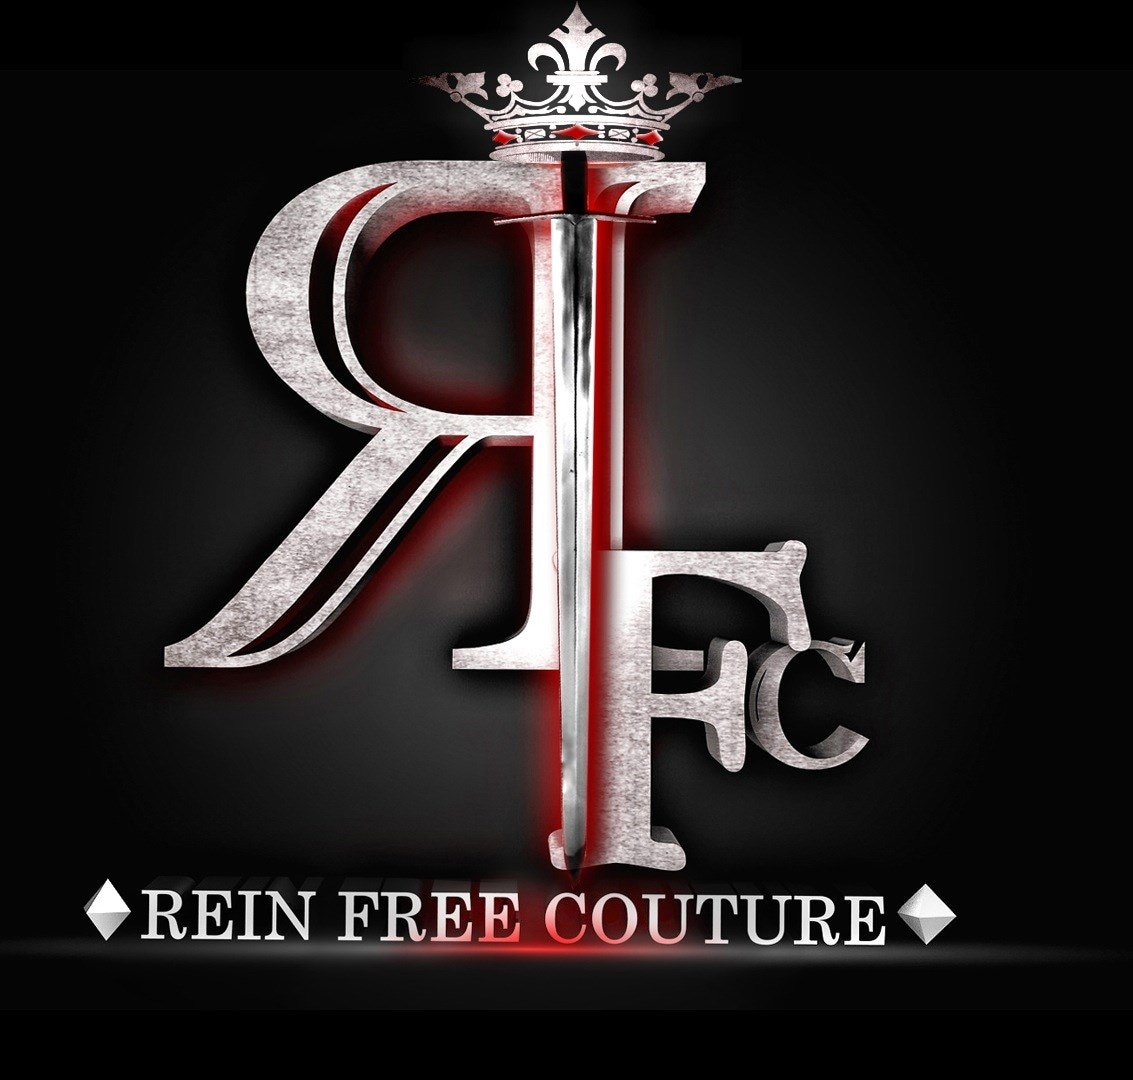 Rein free couture